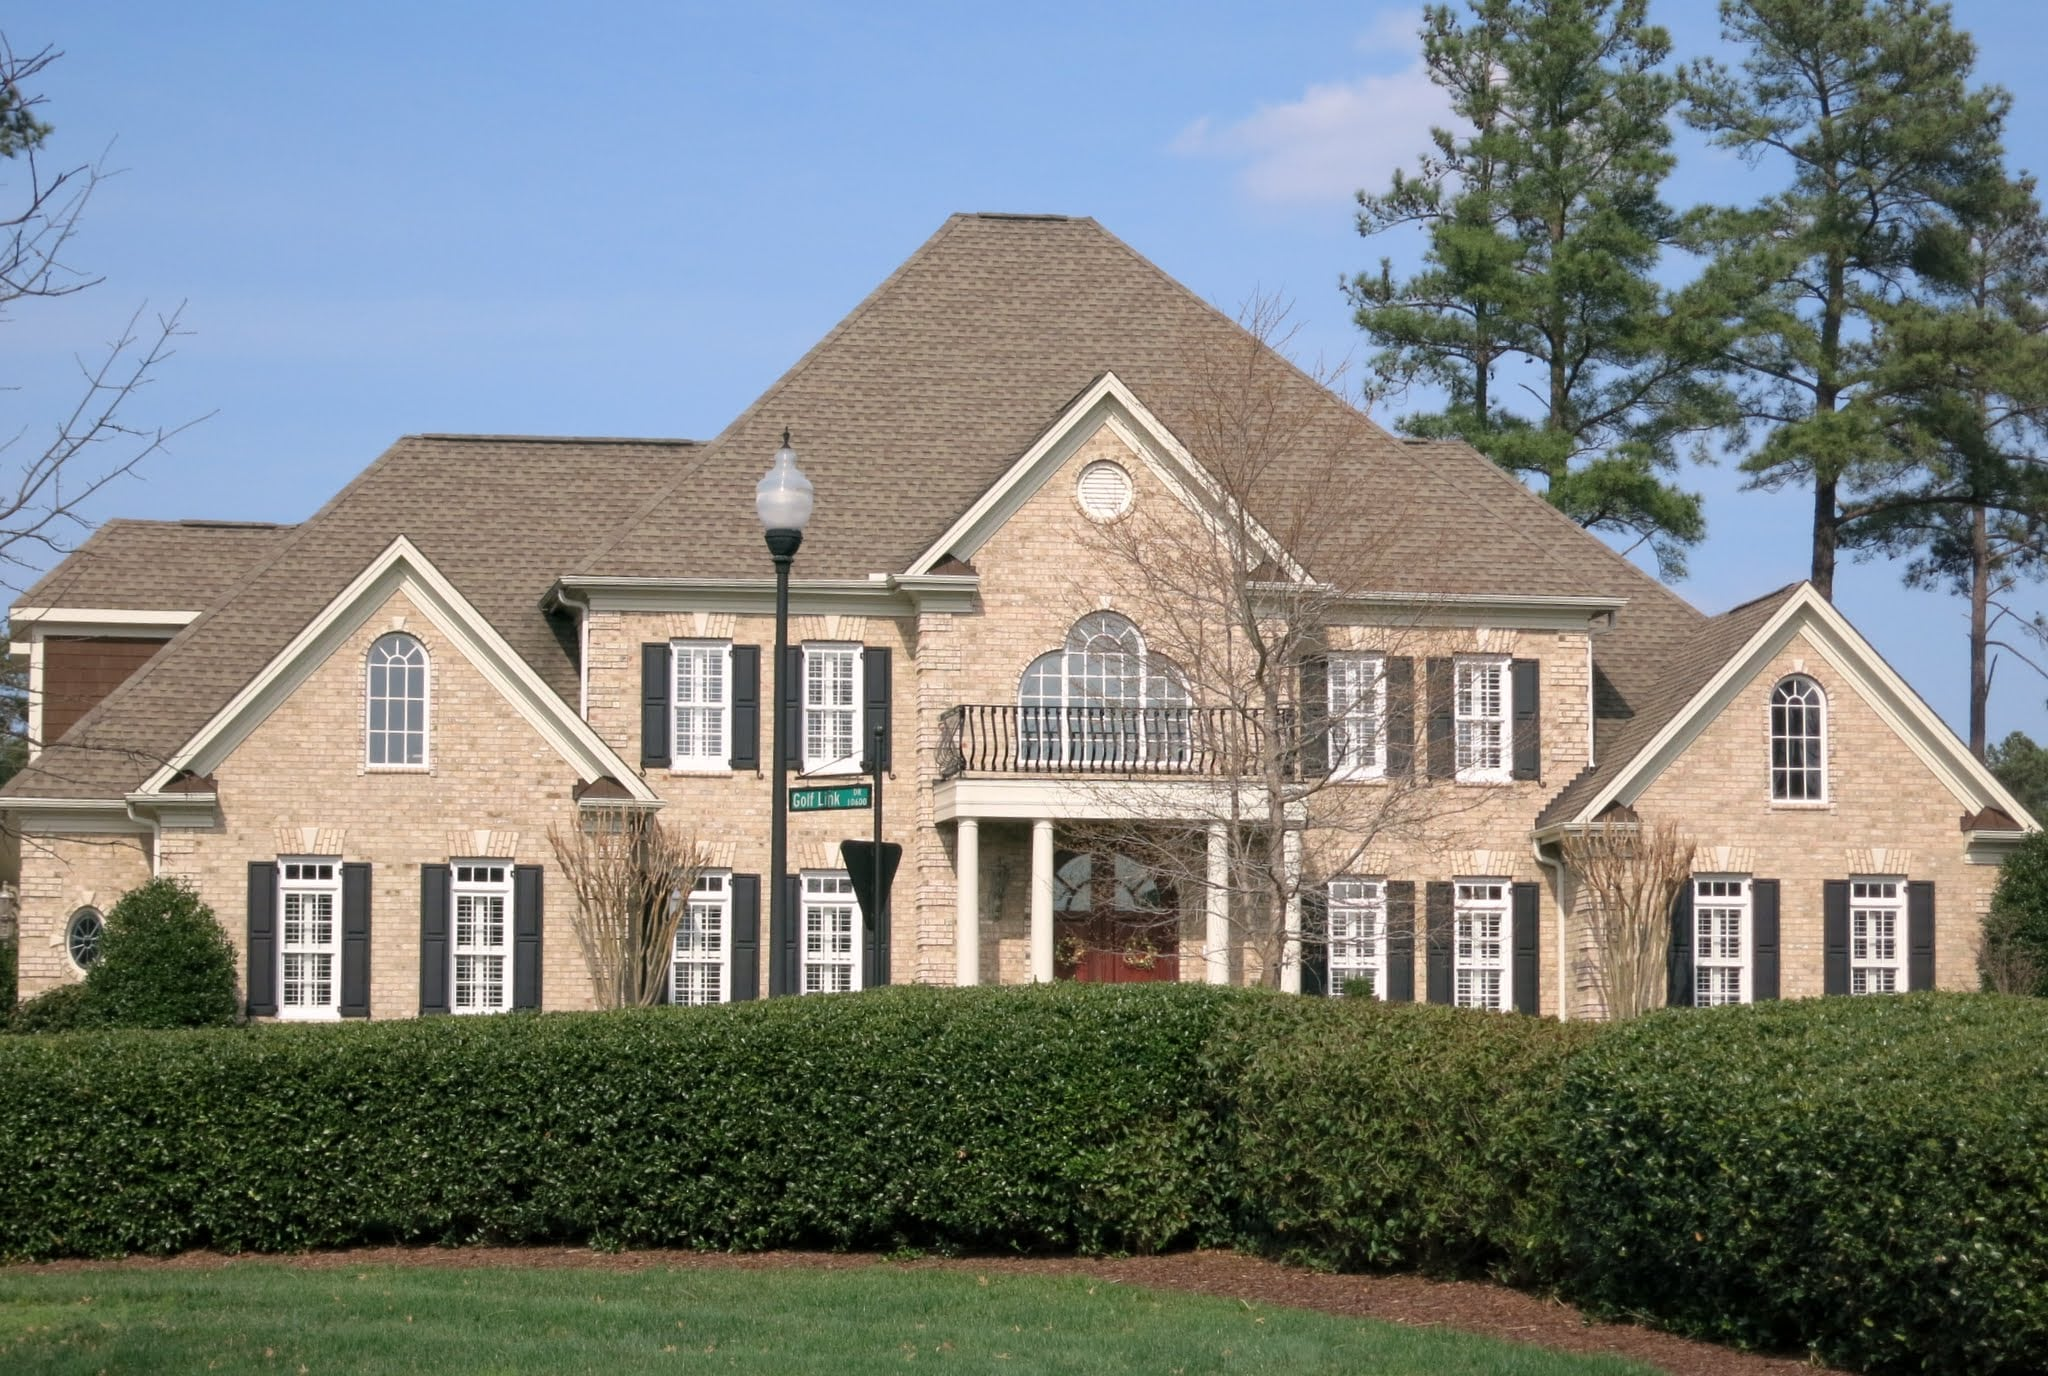 Golf Link Dr. Near Entrance of Brier Creek Country Club, Best Raleigh Neighborhoods, North Raleigh, Brier Chapel